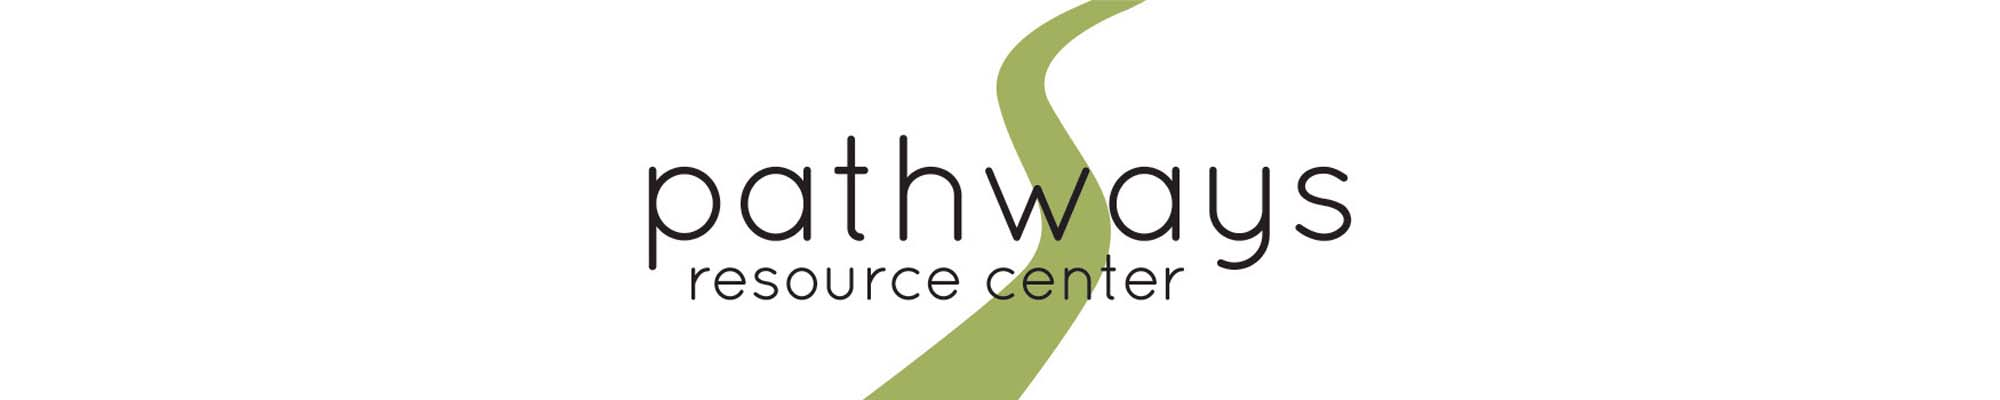 Pathways Resource Center header image